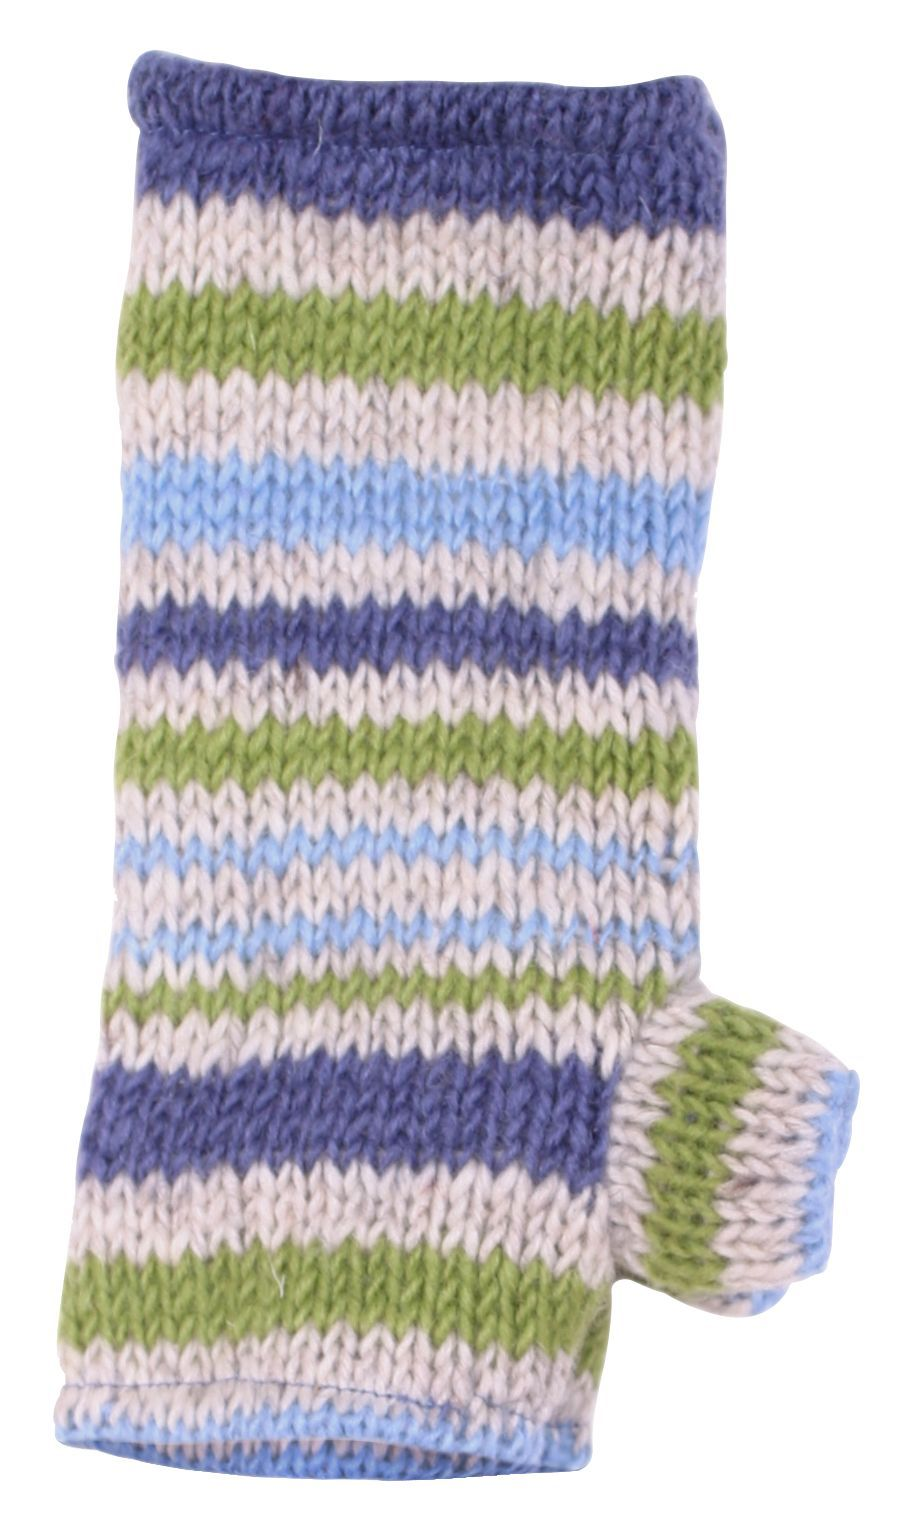 BOY'S MANHATTAN WRISTWARMER